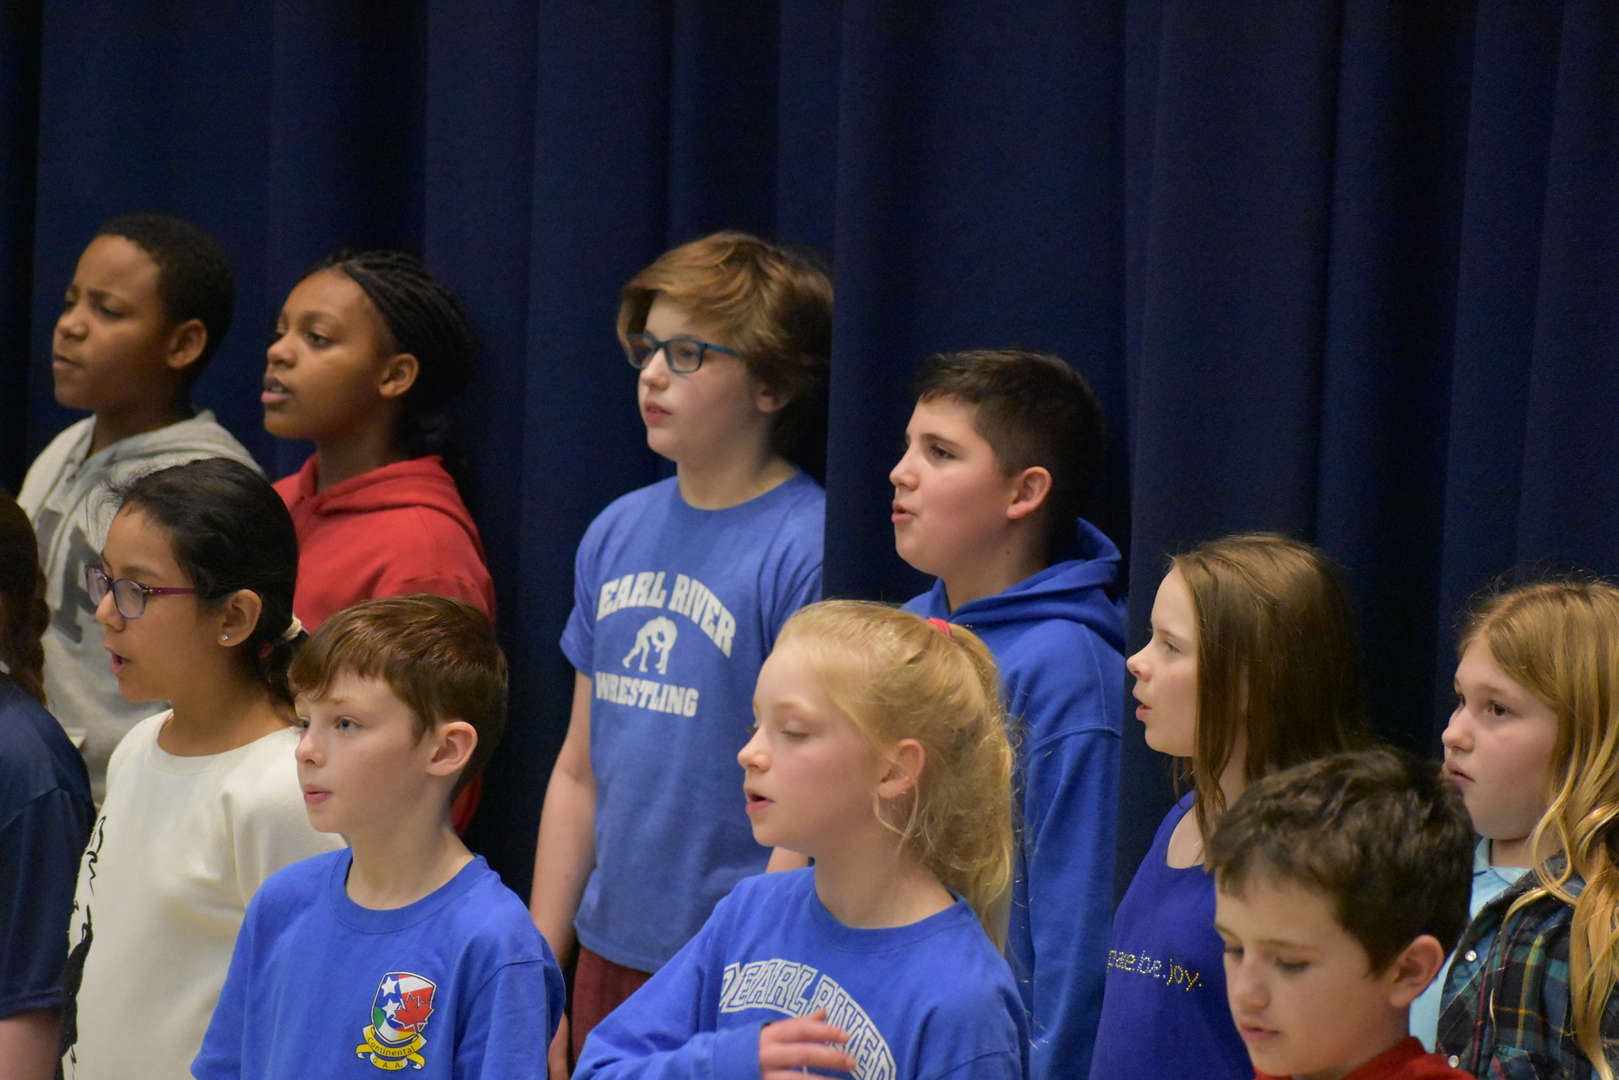 5th graders singing